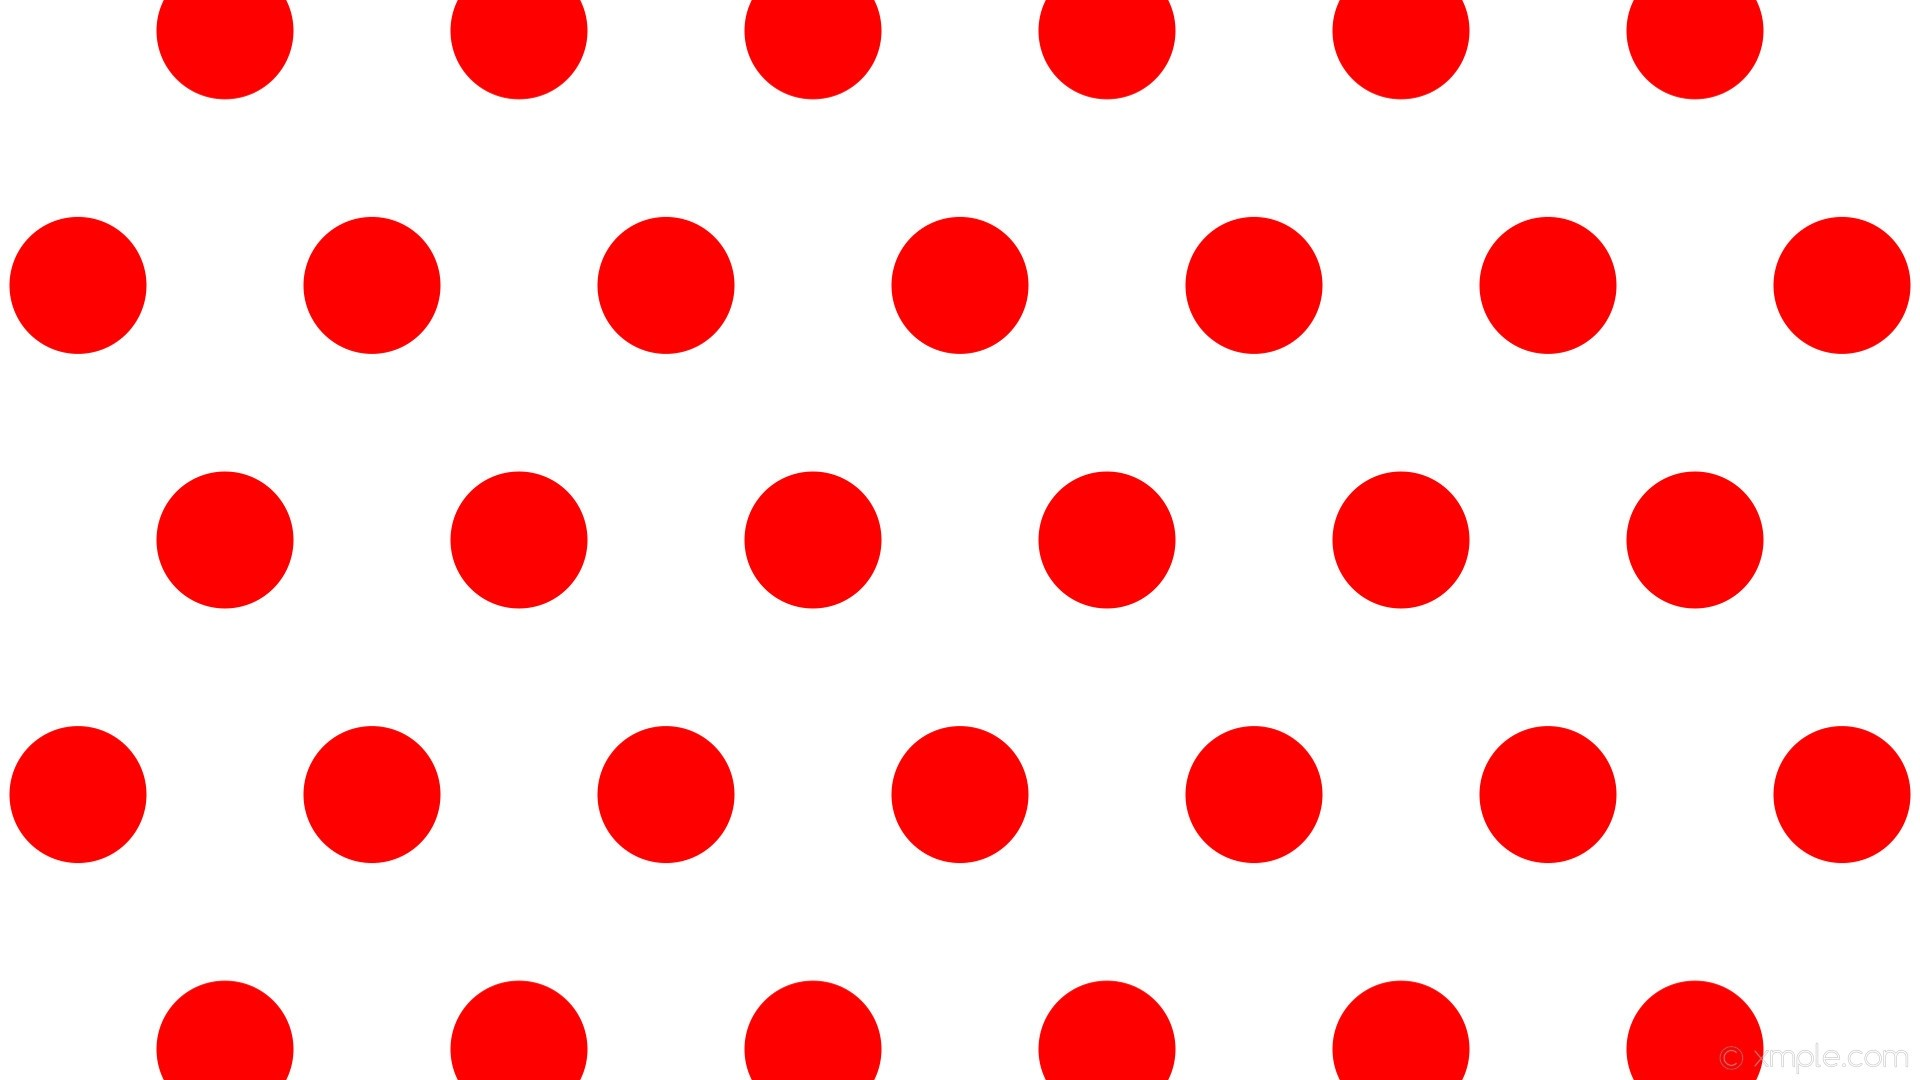 Polka Dot Wallpaper and Background